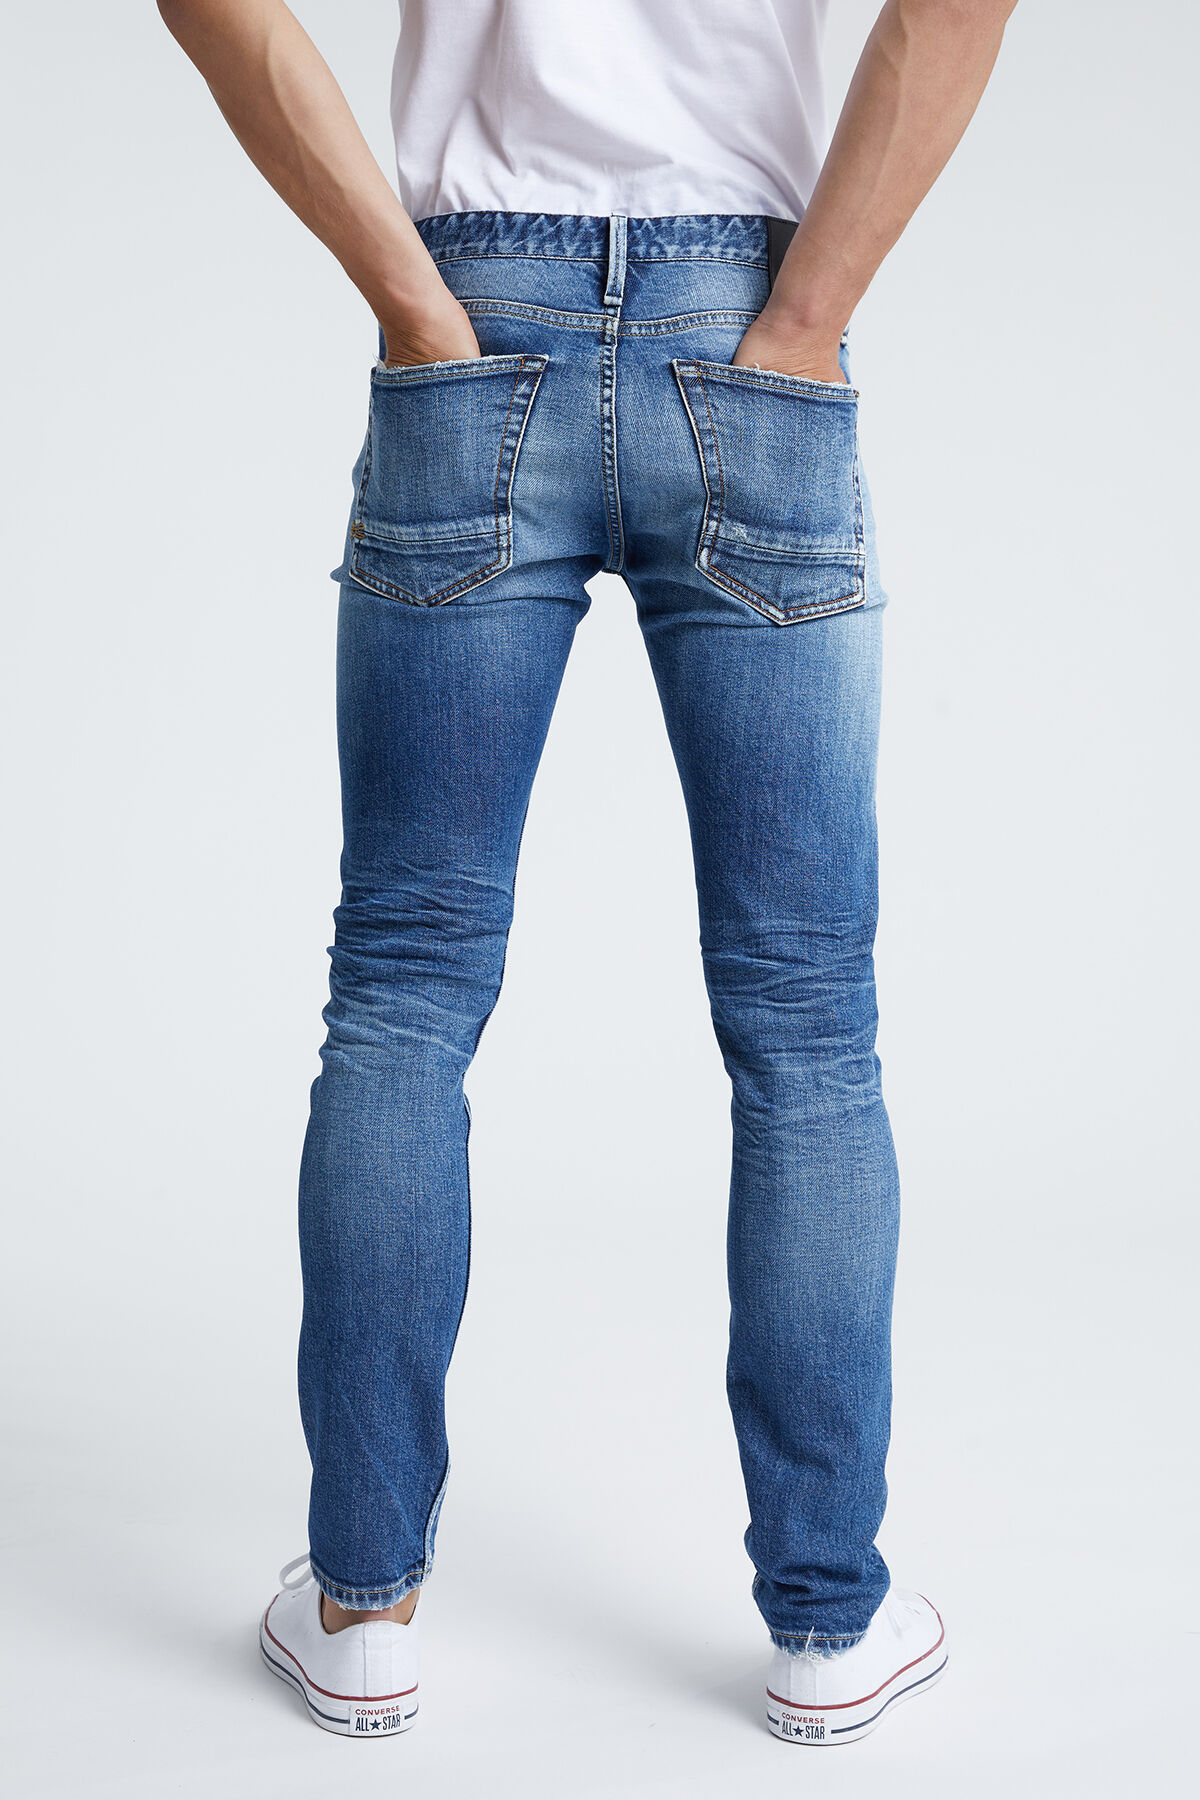 RAZOR Four-Year Selvedge Denim - Slim Fit